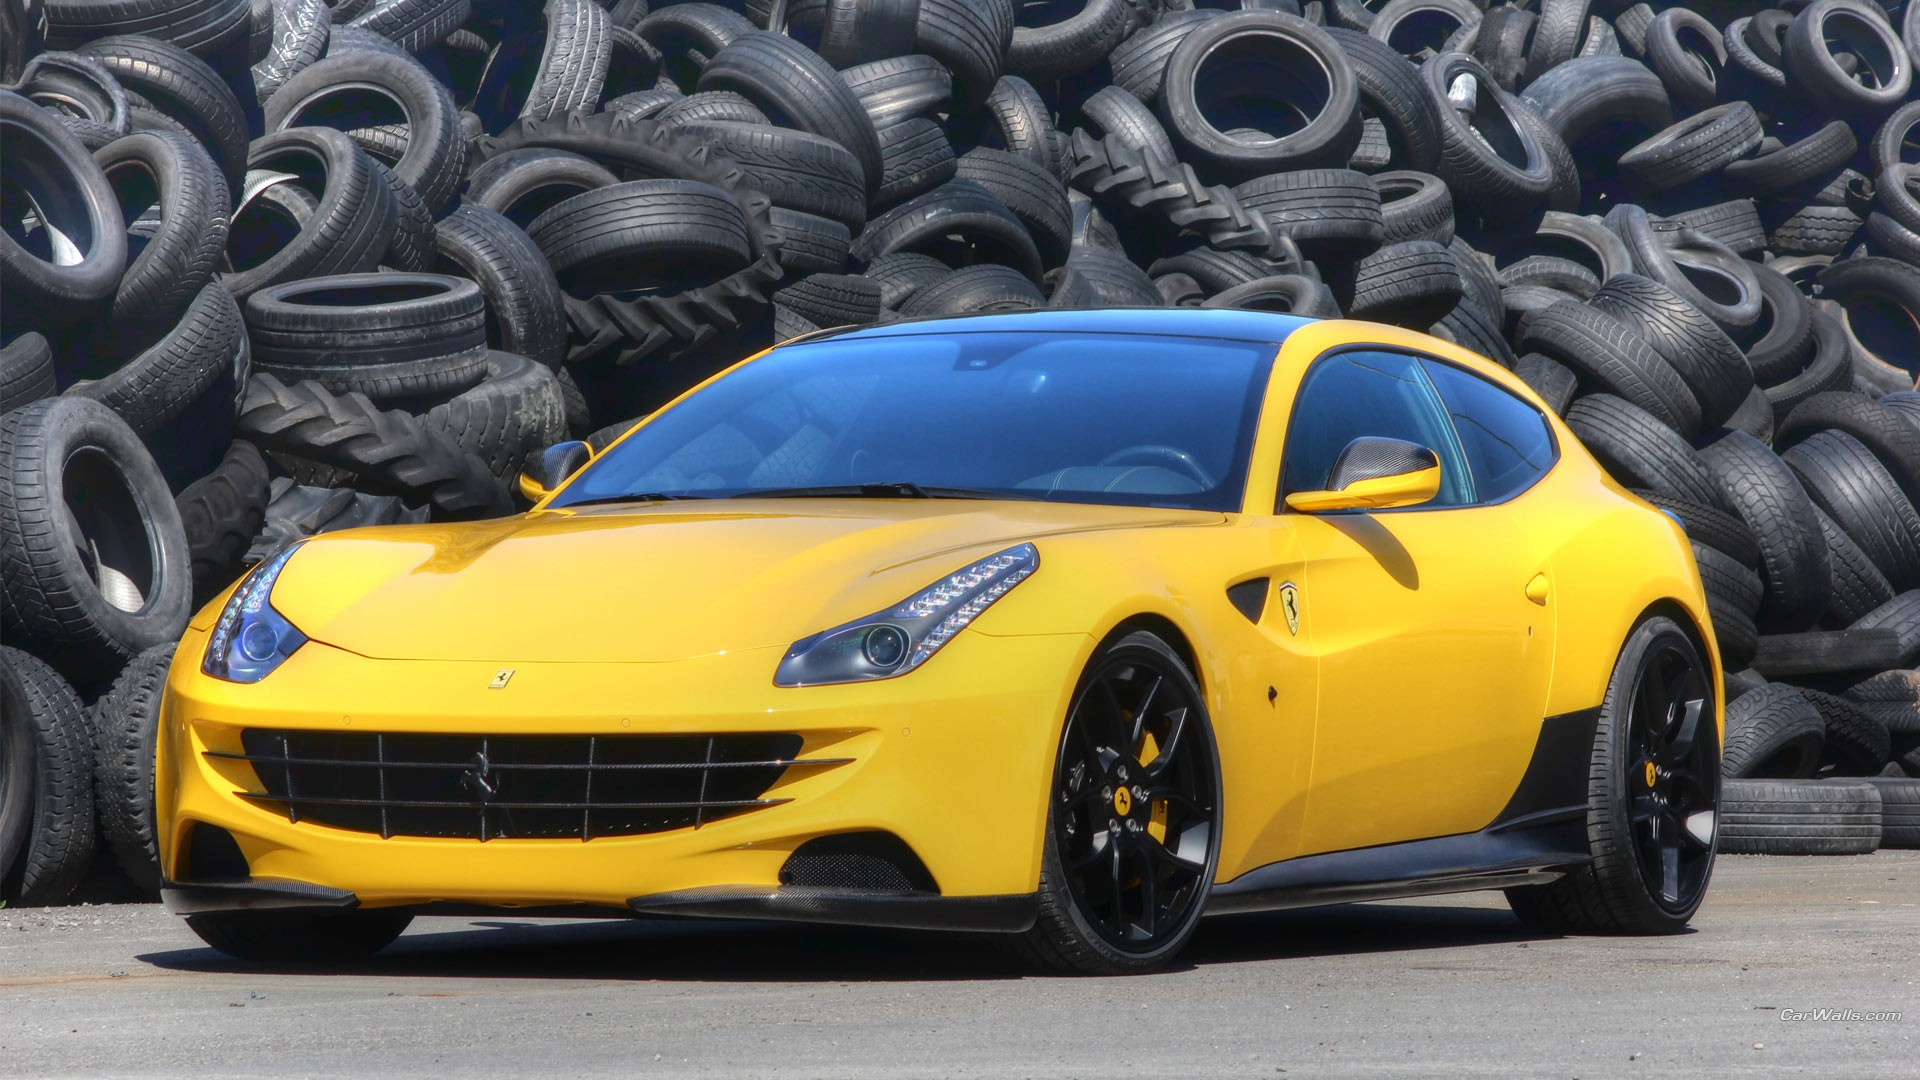 1024x768 Ferrari Ff 2016 1024x768 Resolution Hd 4k Wallpapers Images Backgrounds Photos And Pictures